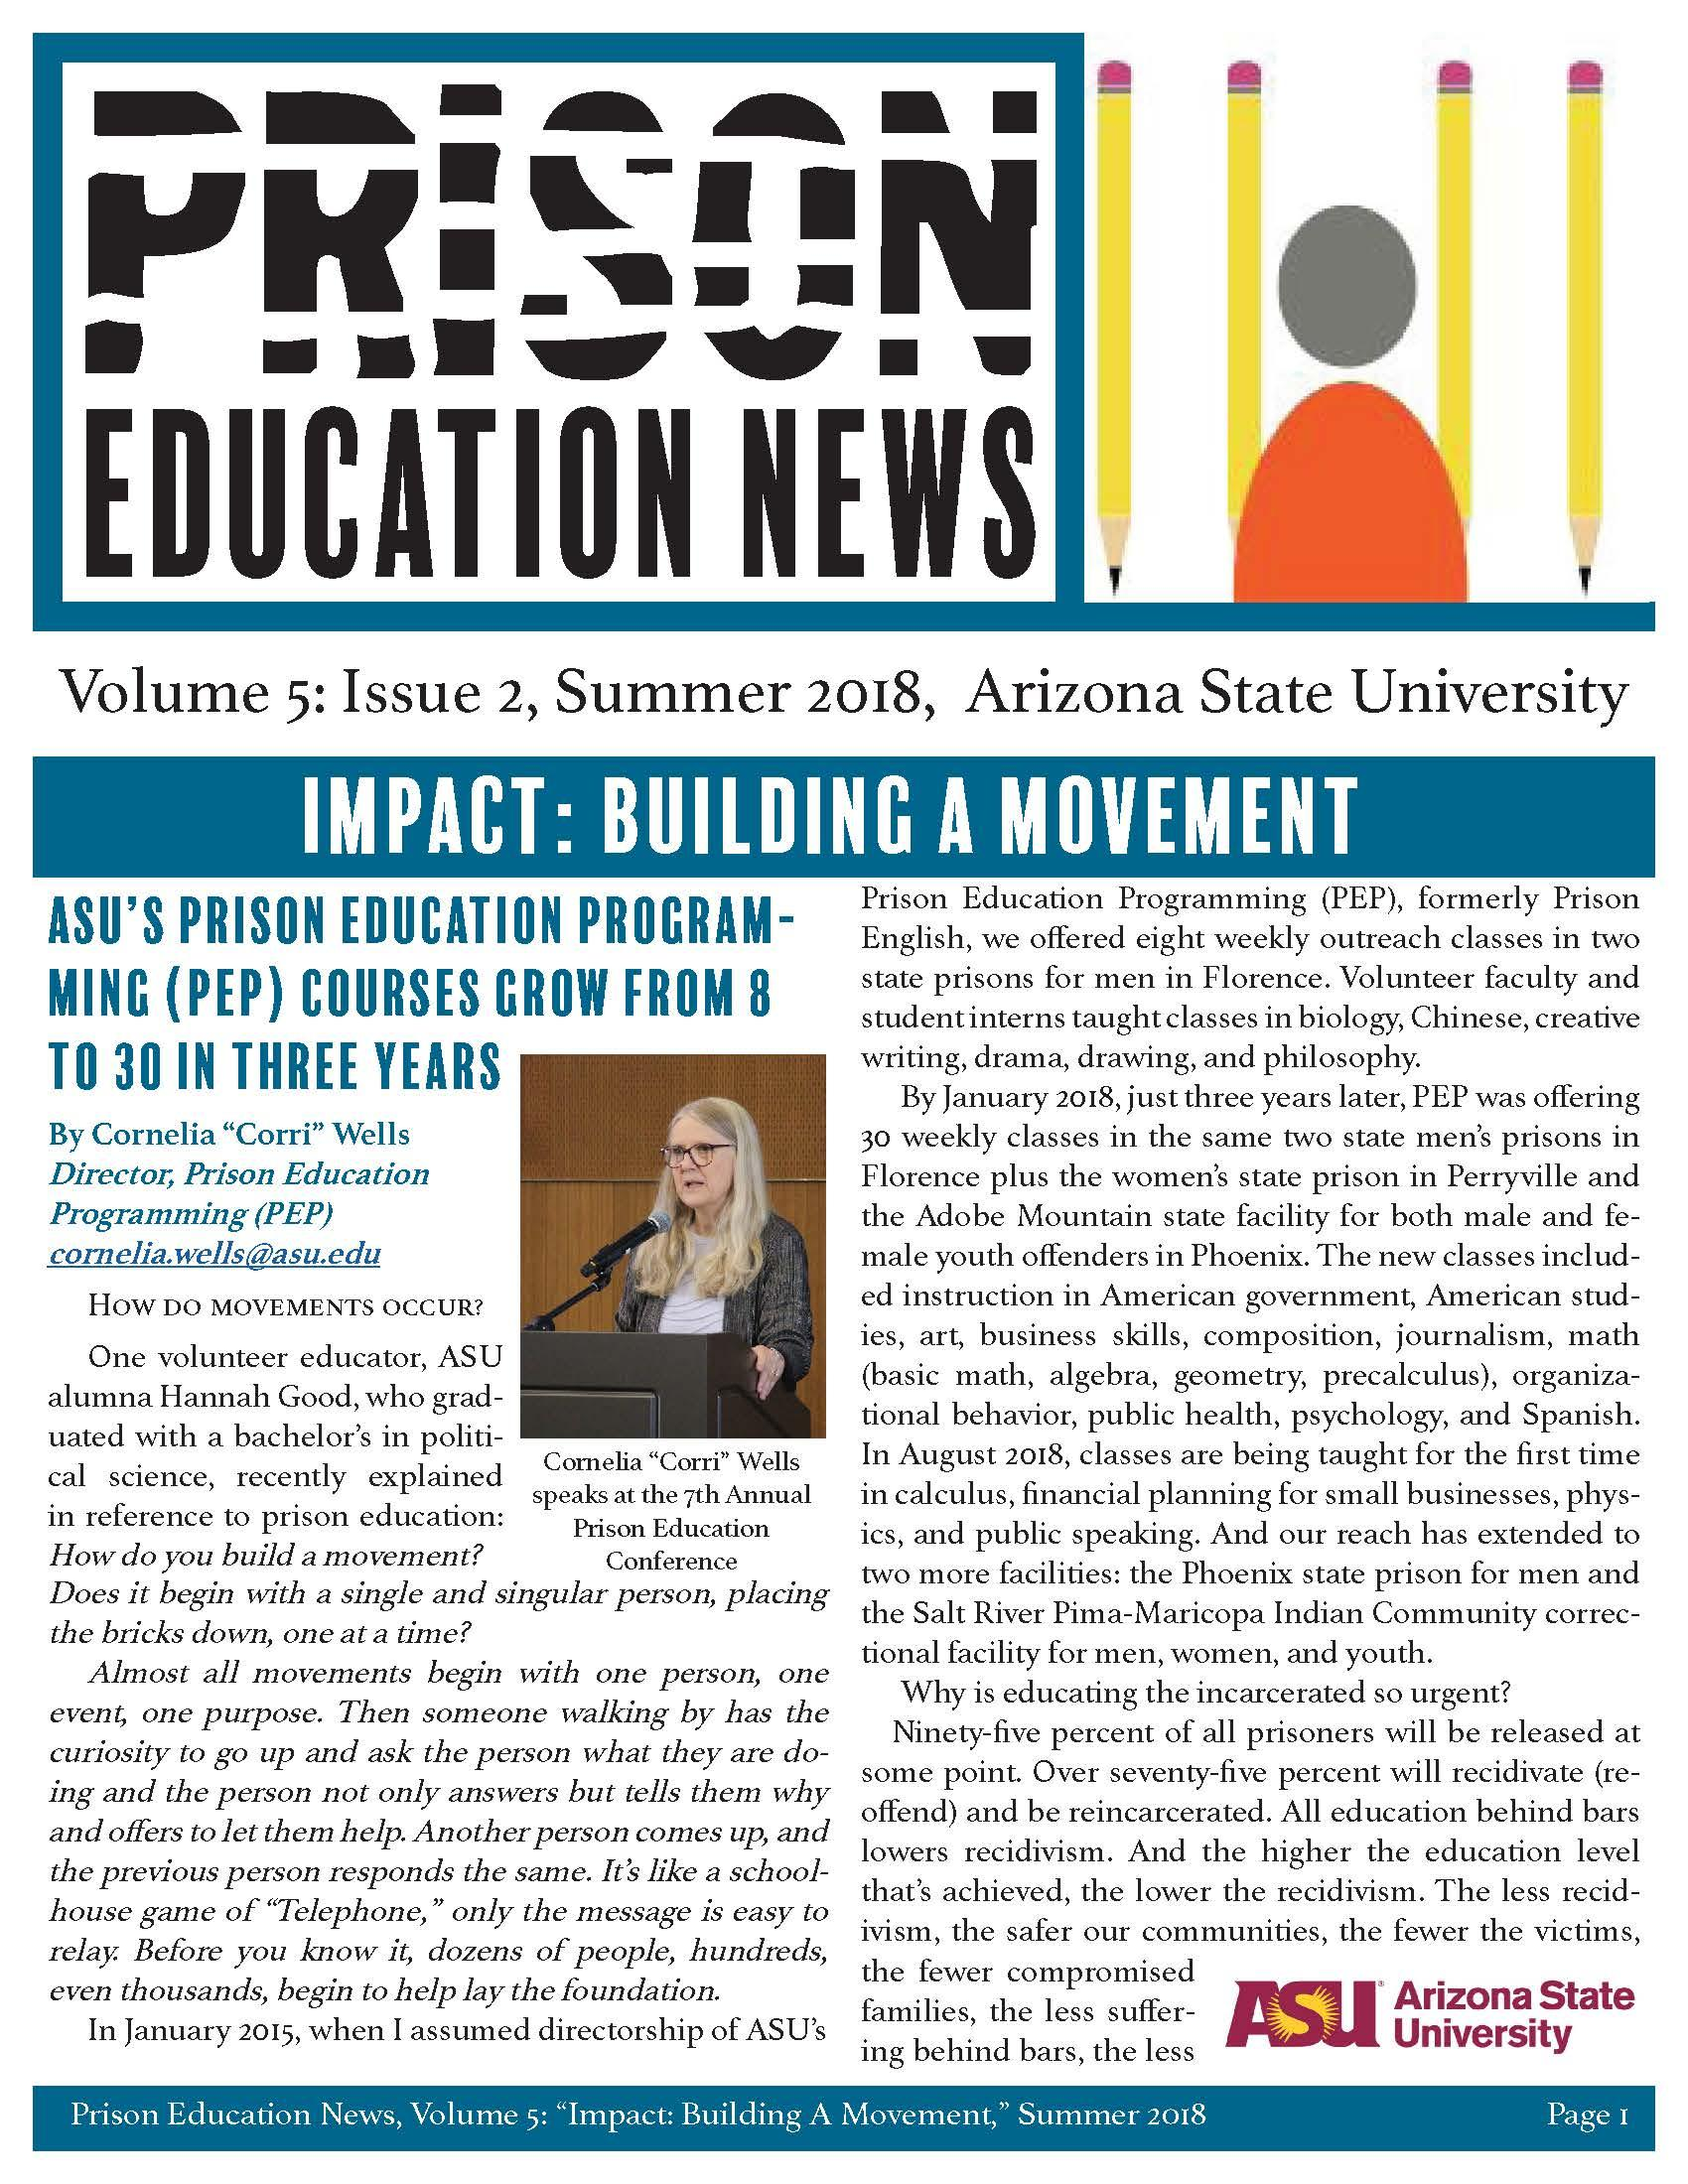 Image of Prison Education News summer 2018